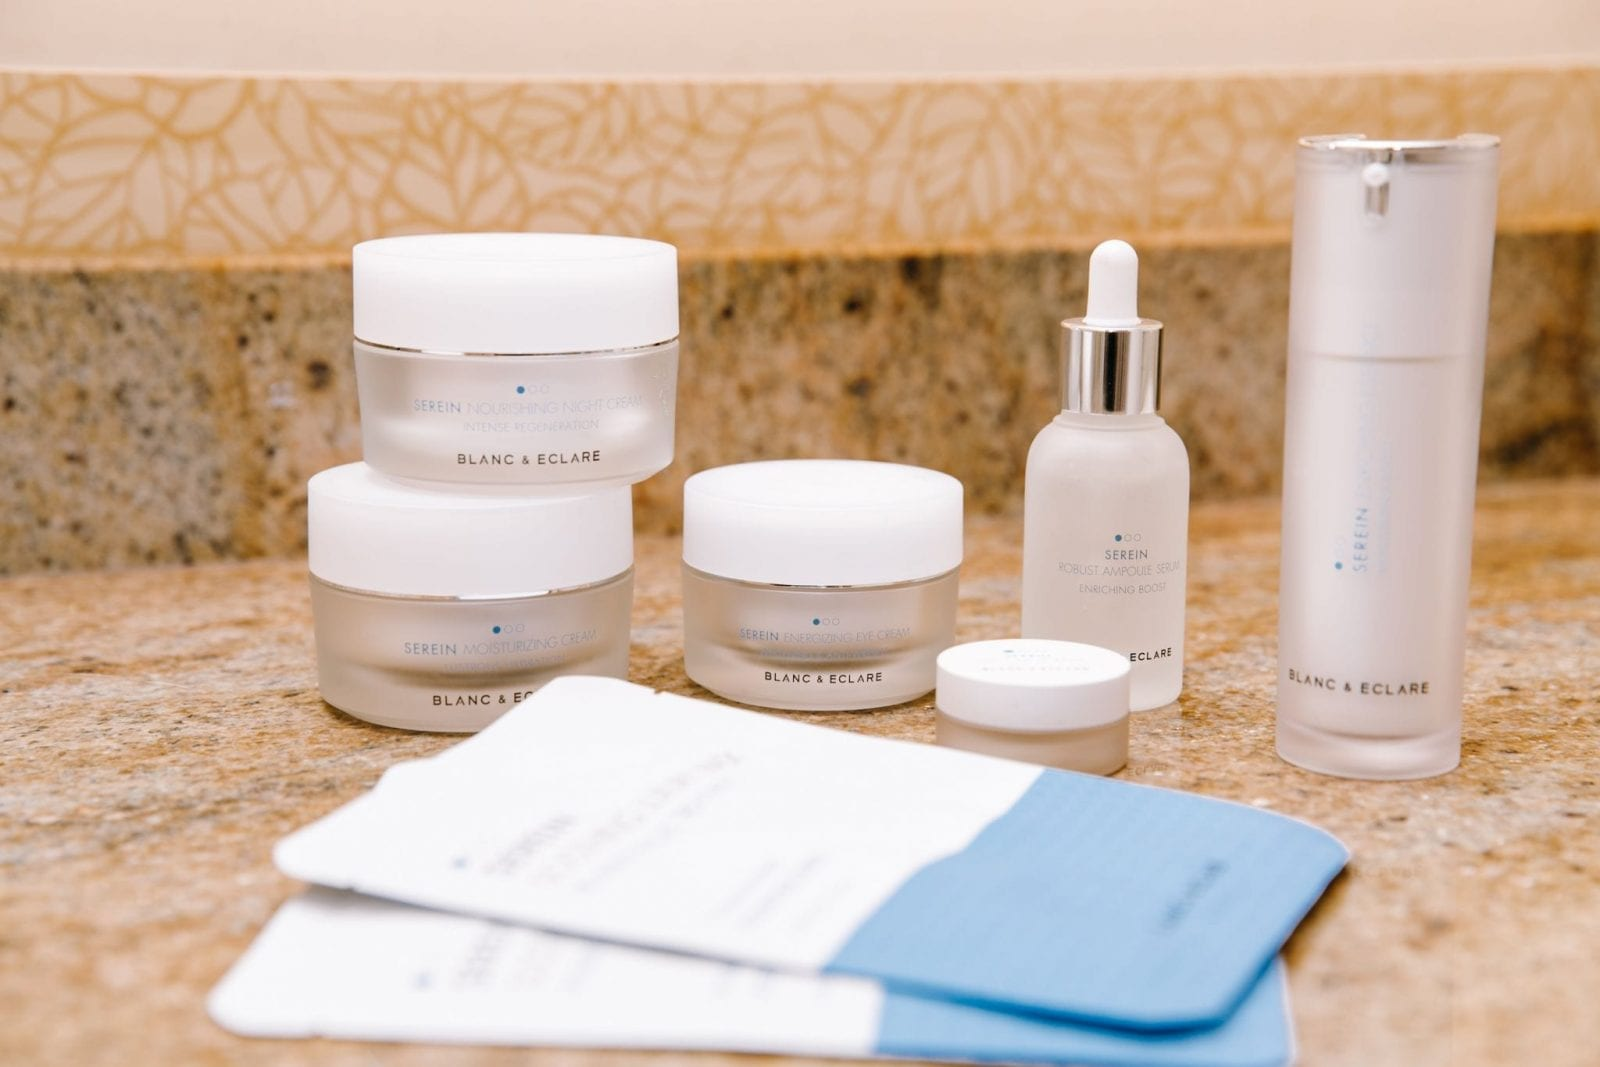 This is a photo of the entire Blanc and Eclaire skincare line, which I use on a daily basis.